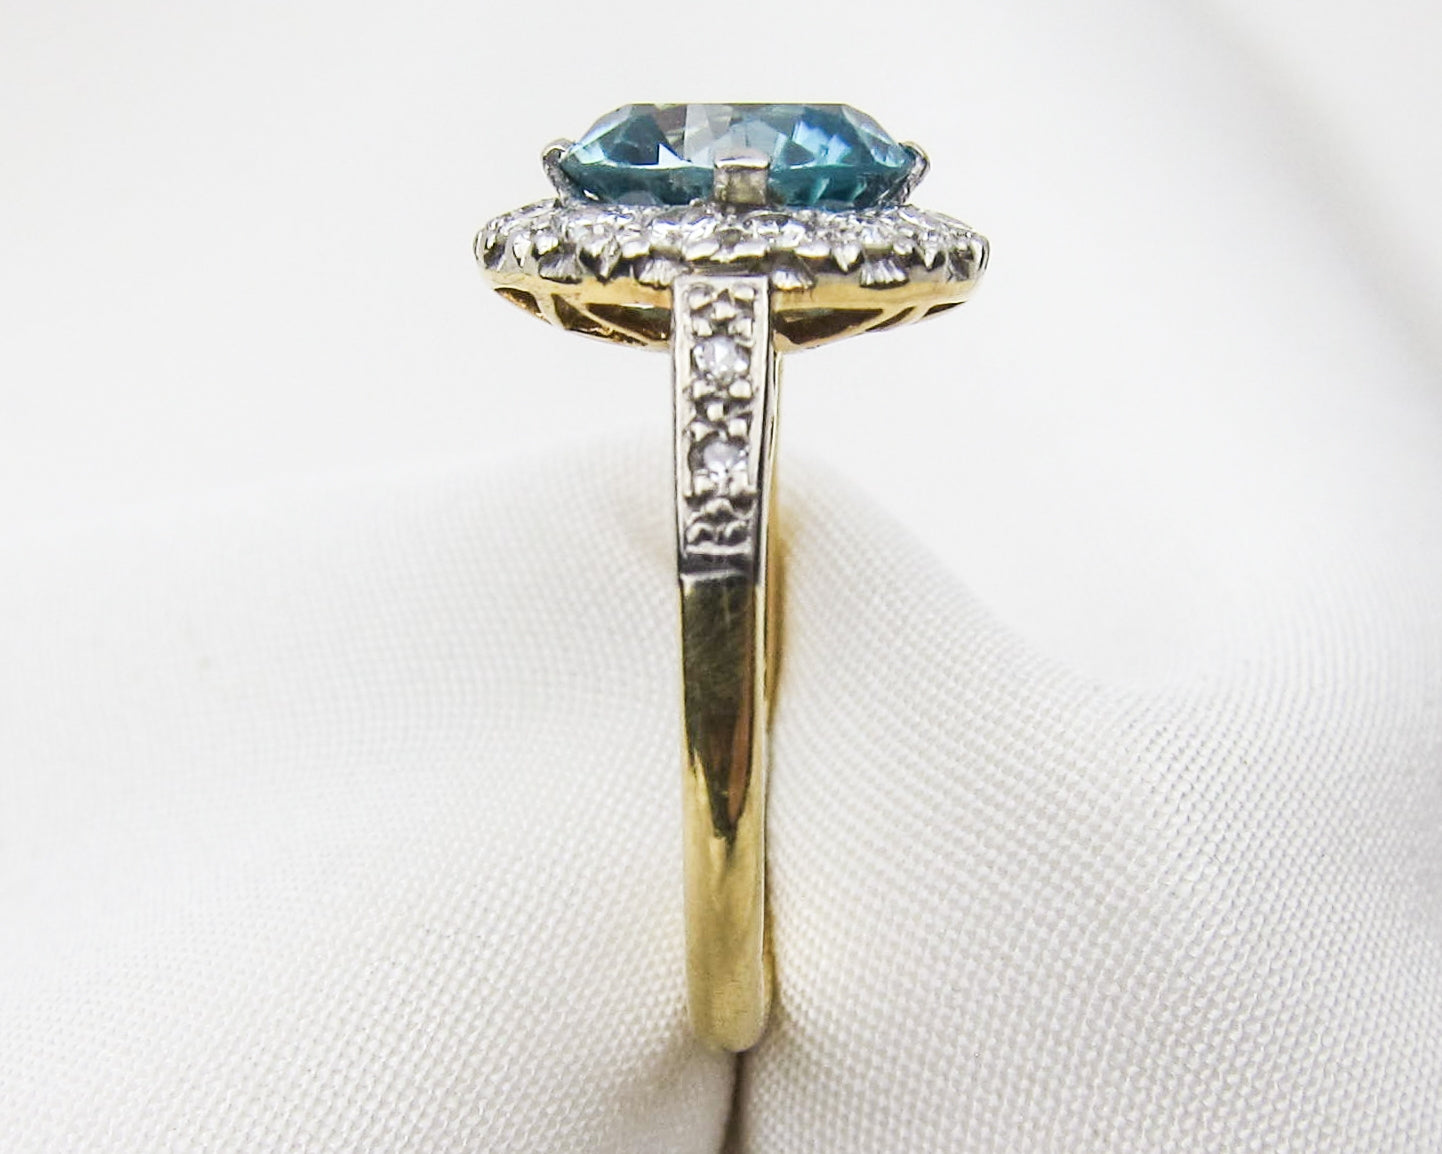 c. 1930 Blue Zircon & Diamond Ring